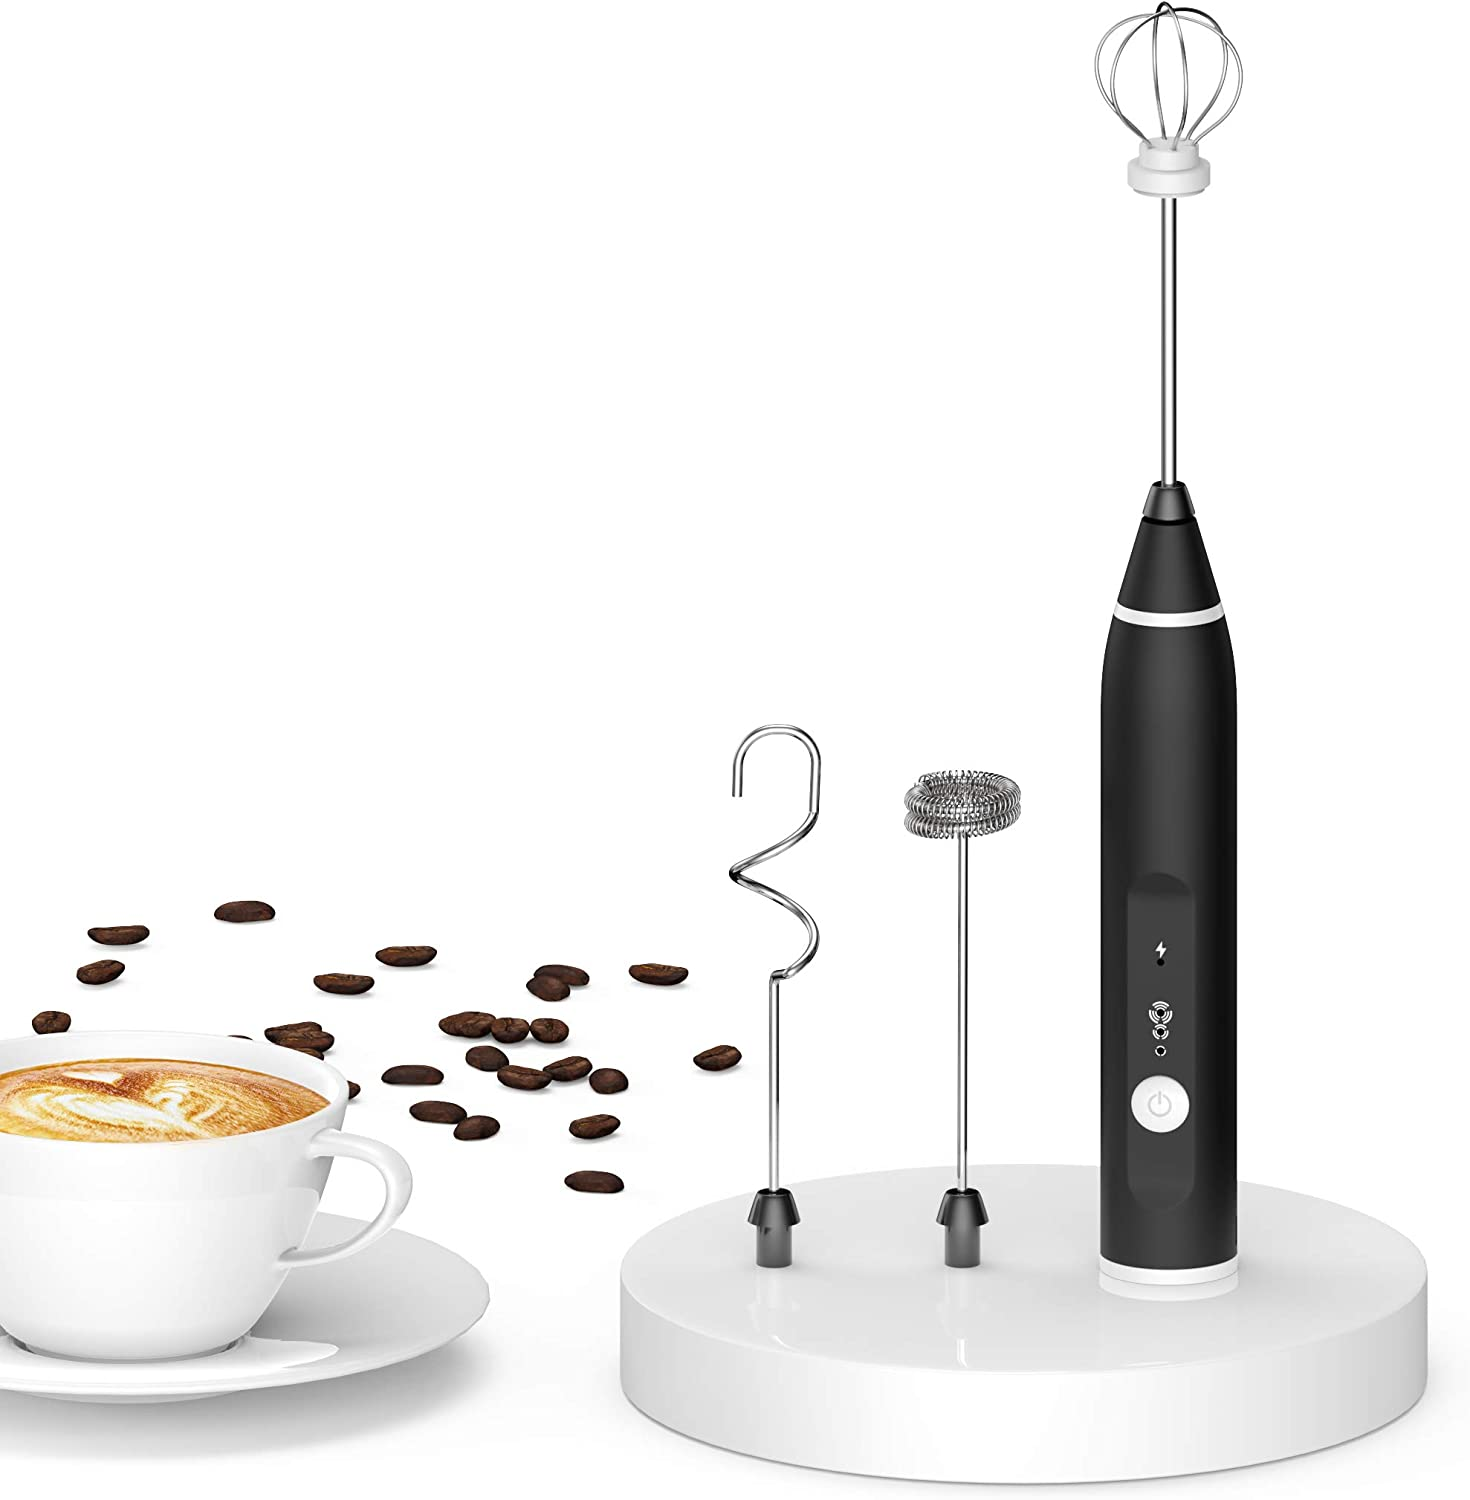 Milk Frother Handheld USB Rechargeable, Electric Whisk Coffee Frother Mixer with 2 Stainless whisks, 3-Speed Adjustable Foam Maker Blender for Coffee Matcha Latte Cappuccino Hot Chocolate Keto Diet